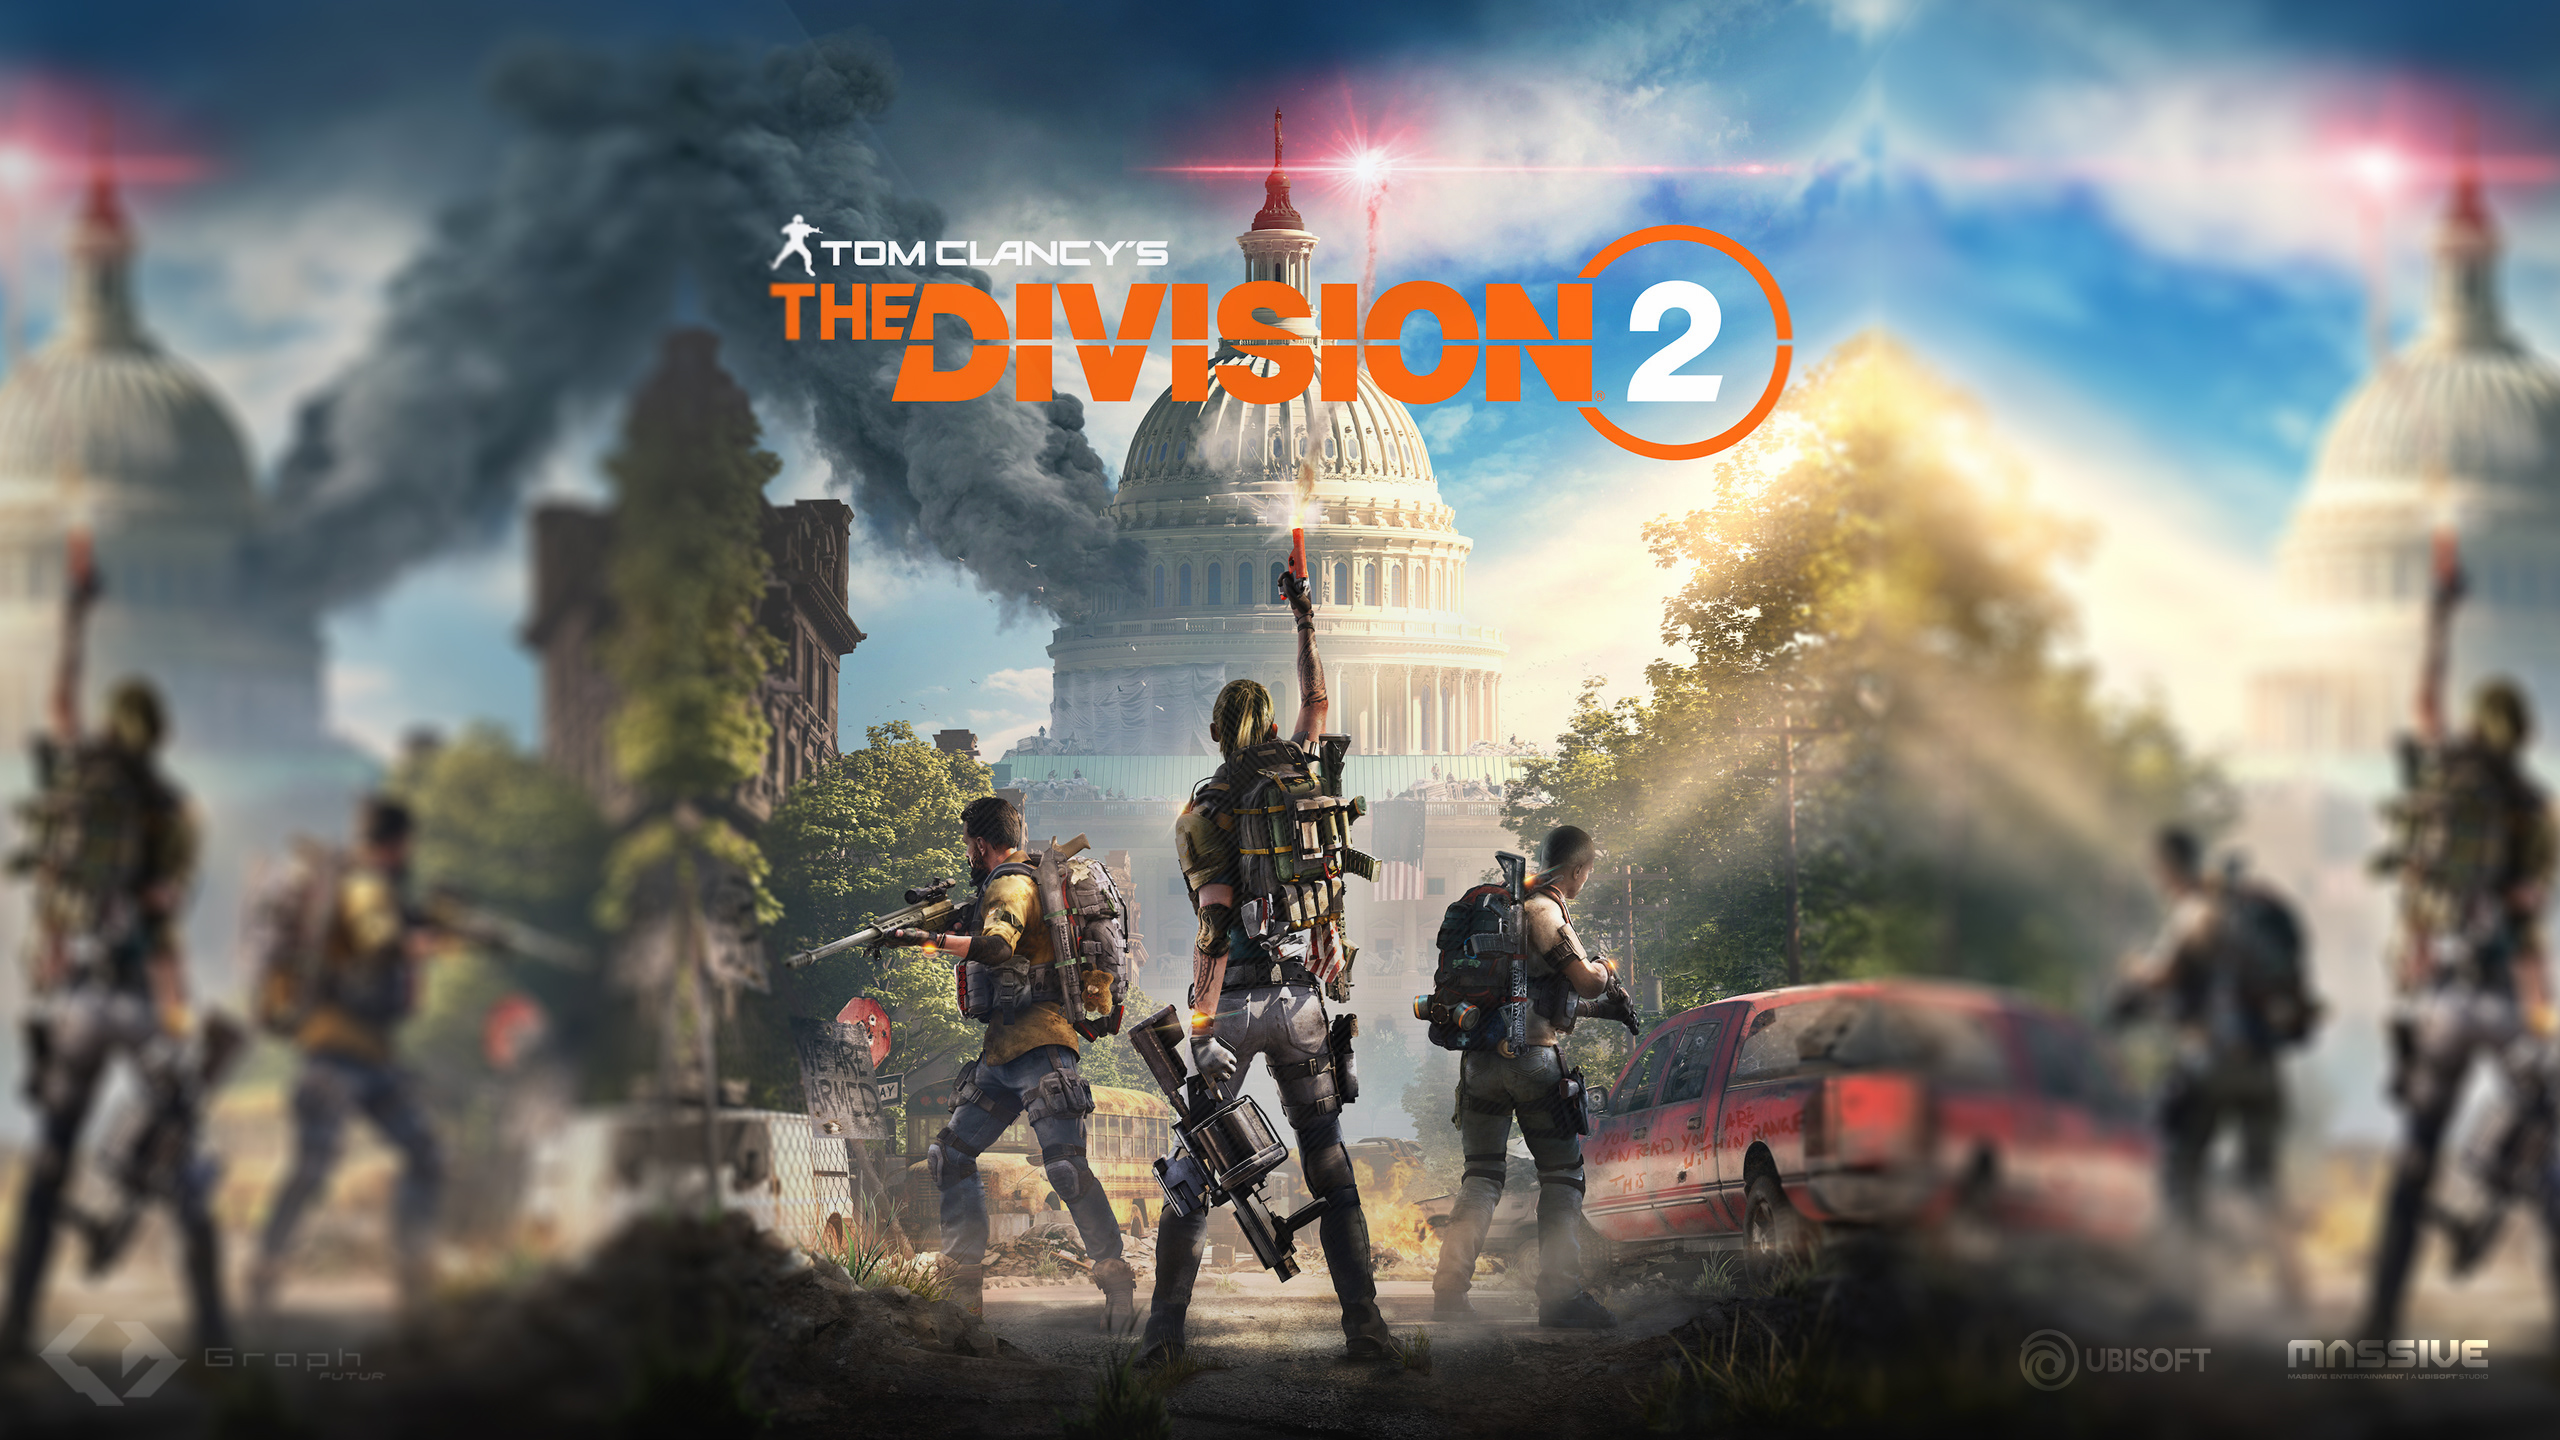 The Division 2 Wallpaper HD